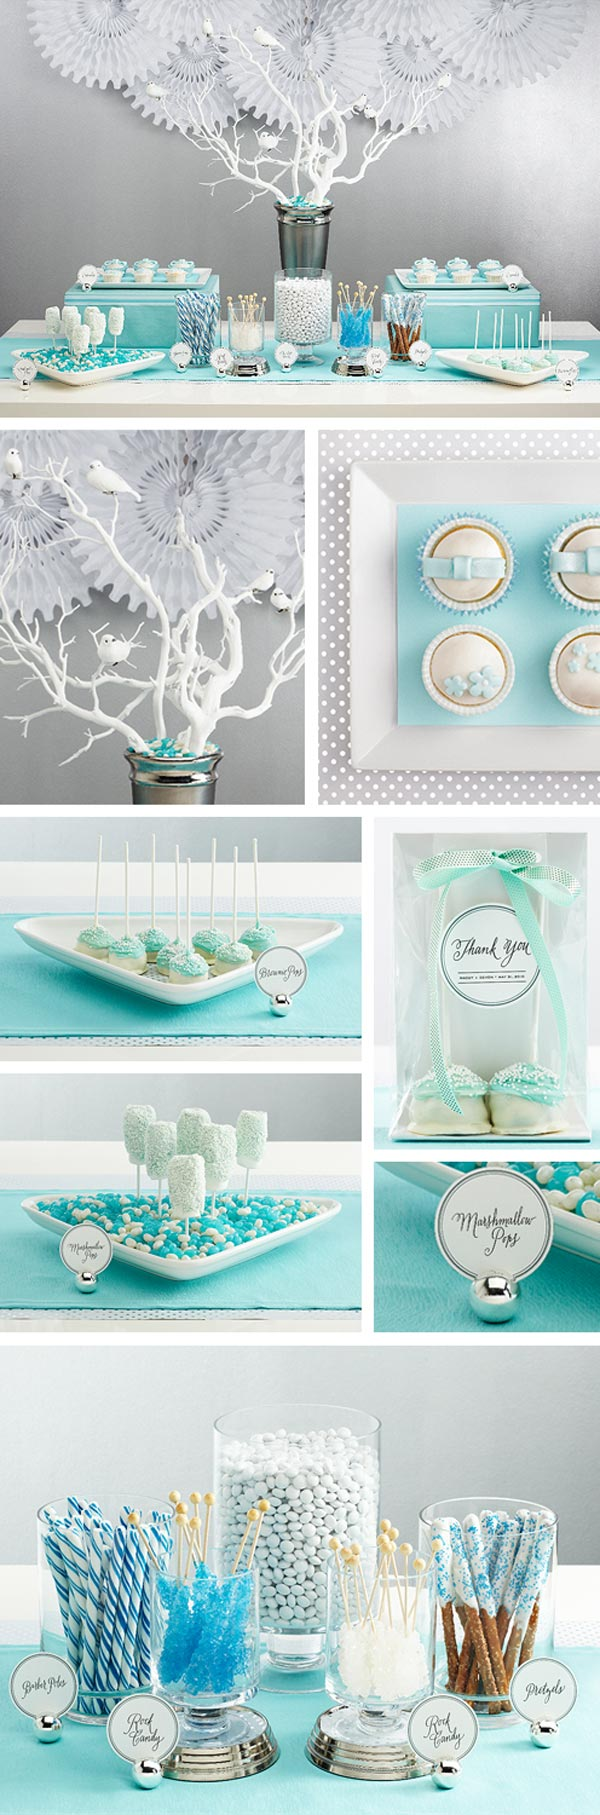 Baby shower decor ideas arhitektura for Baby shower decoration ideas for boys